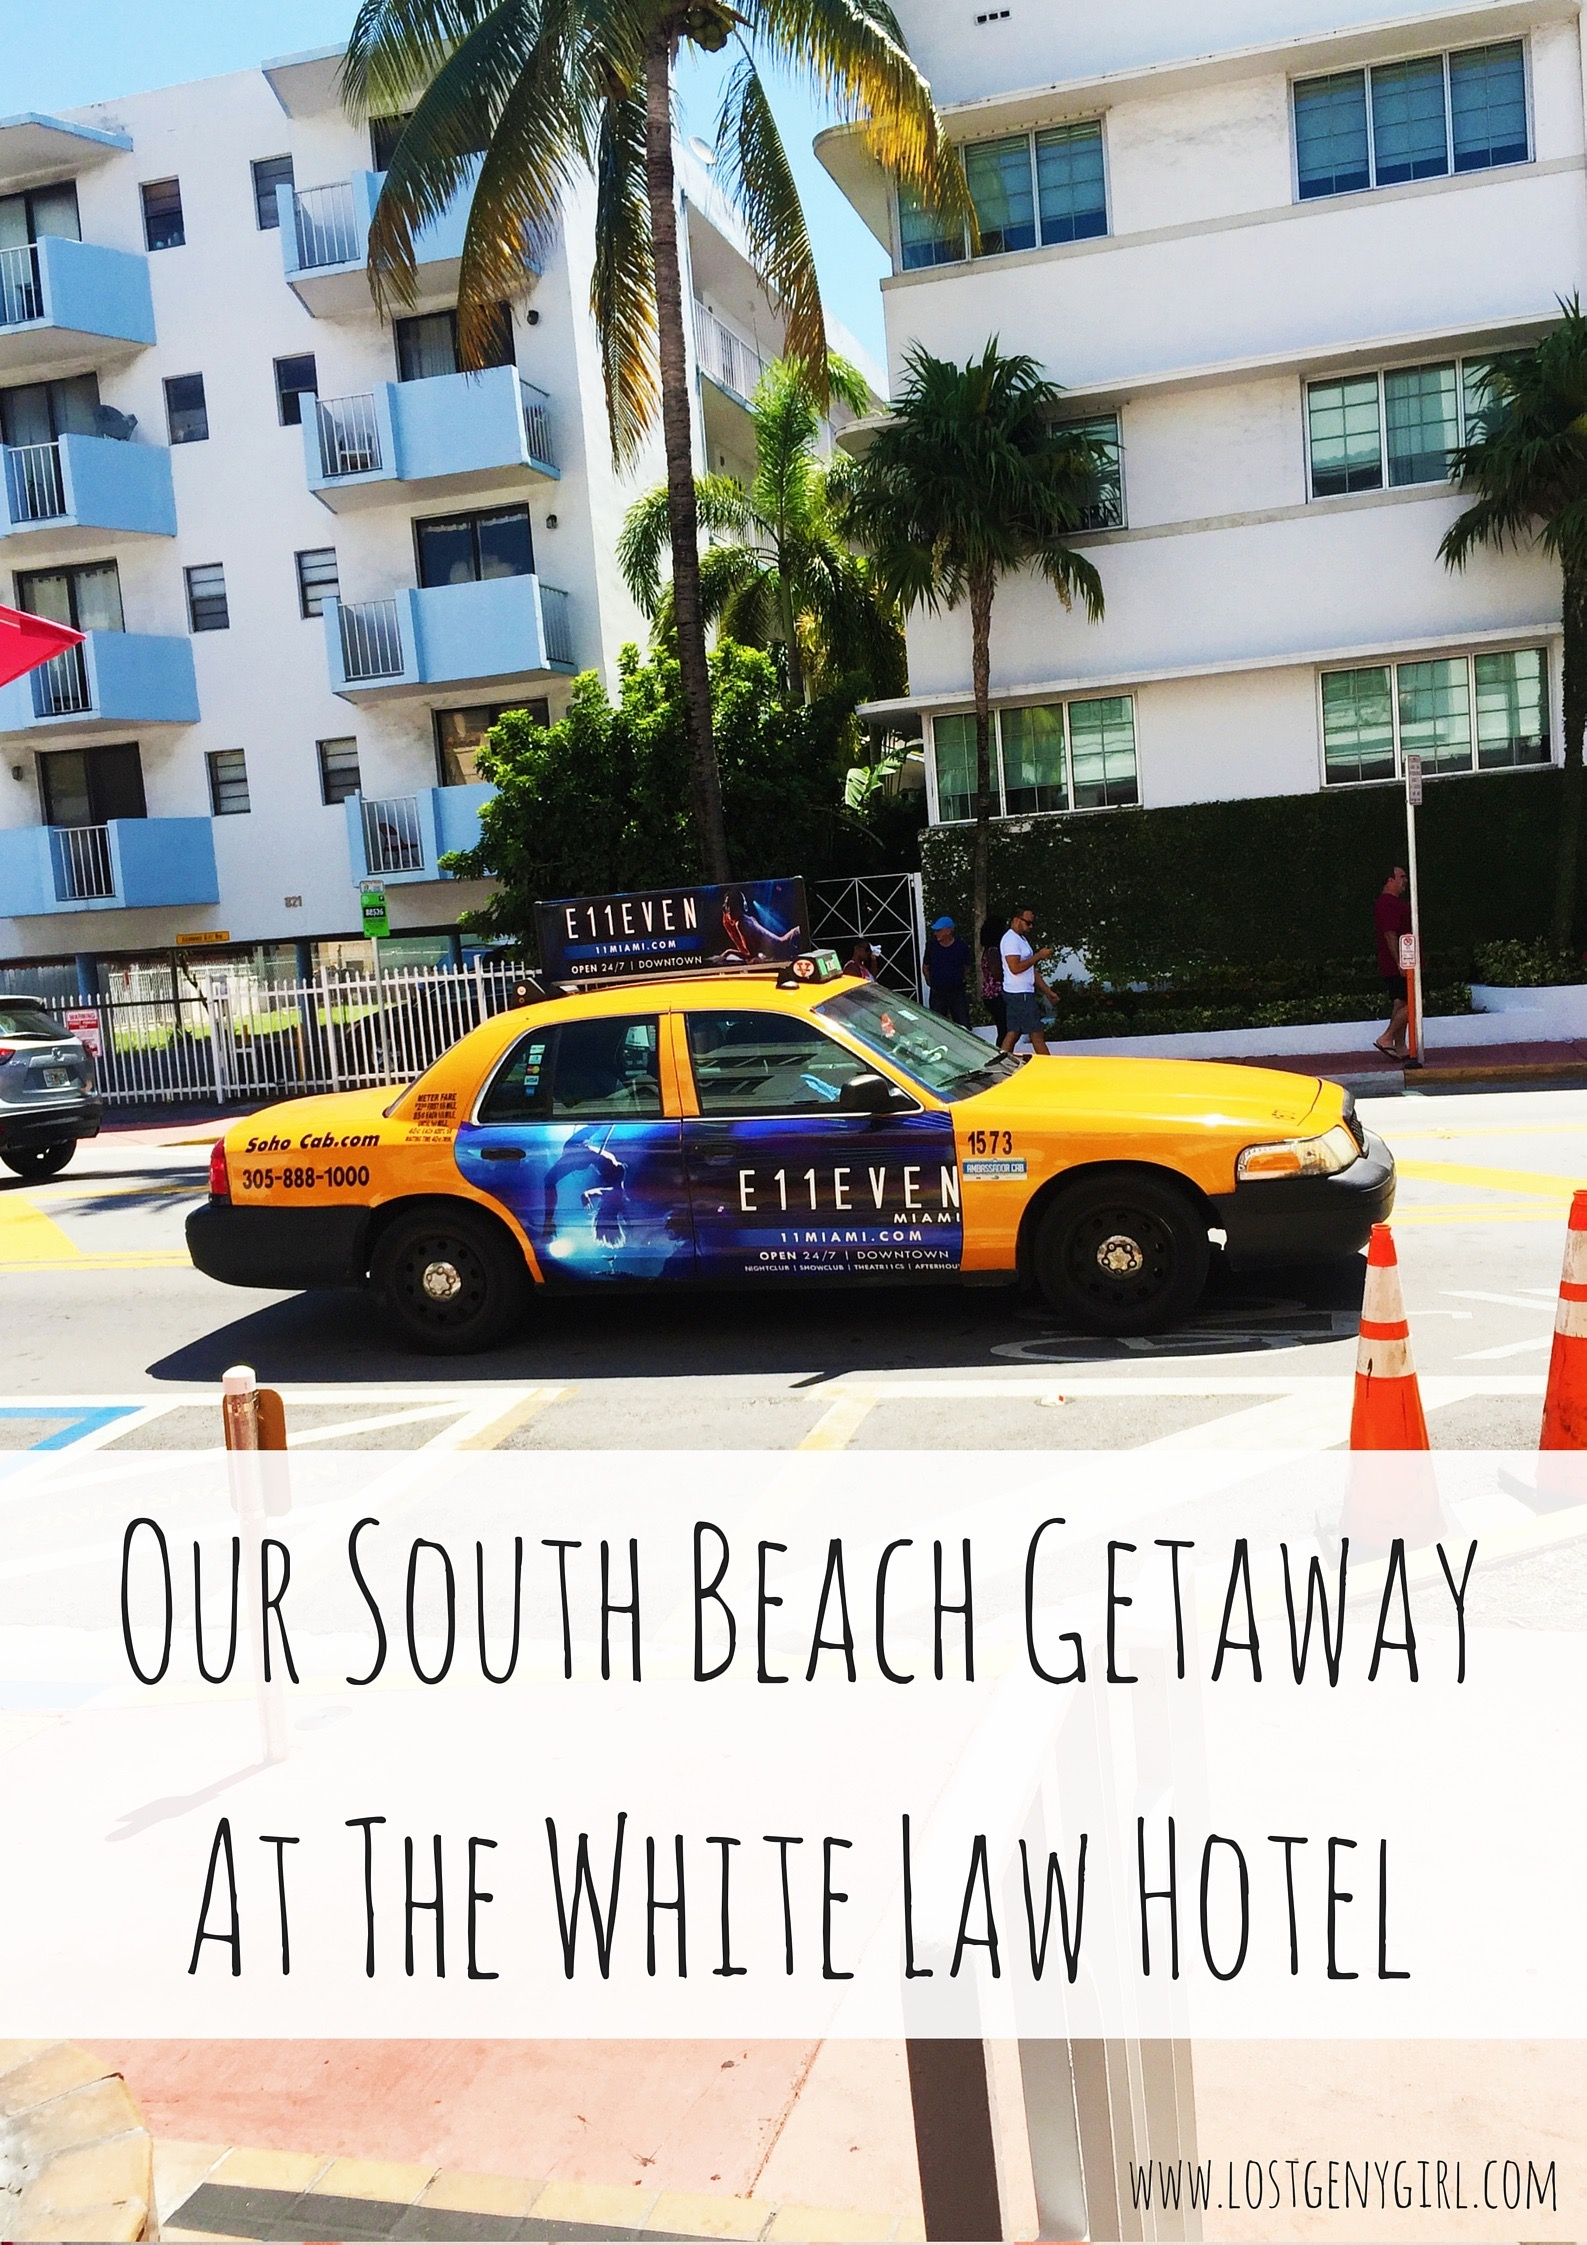 Our South Beach Getaway At The White Law Hotel